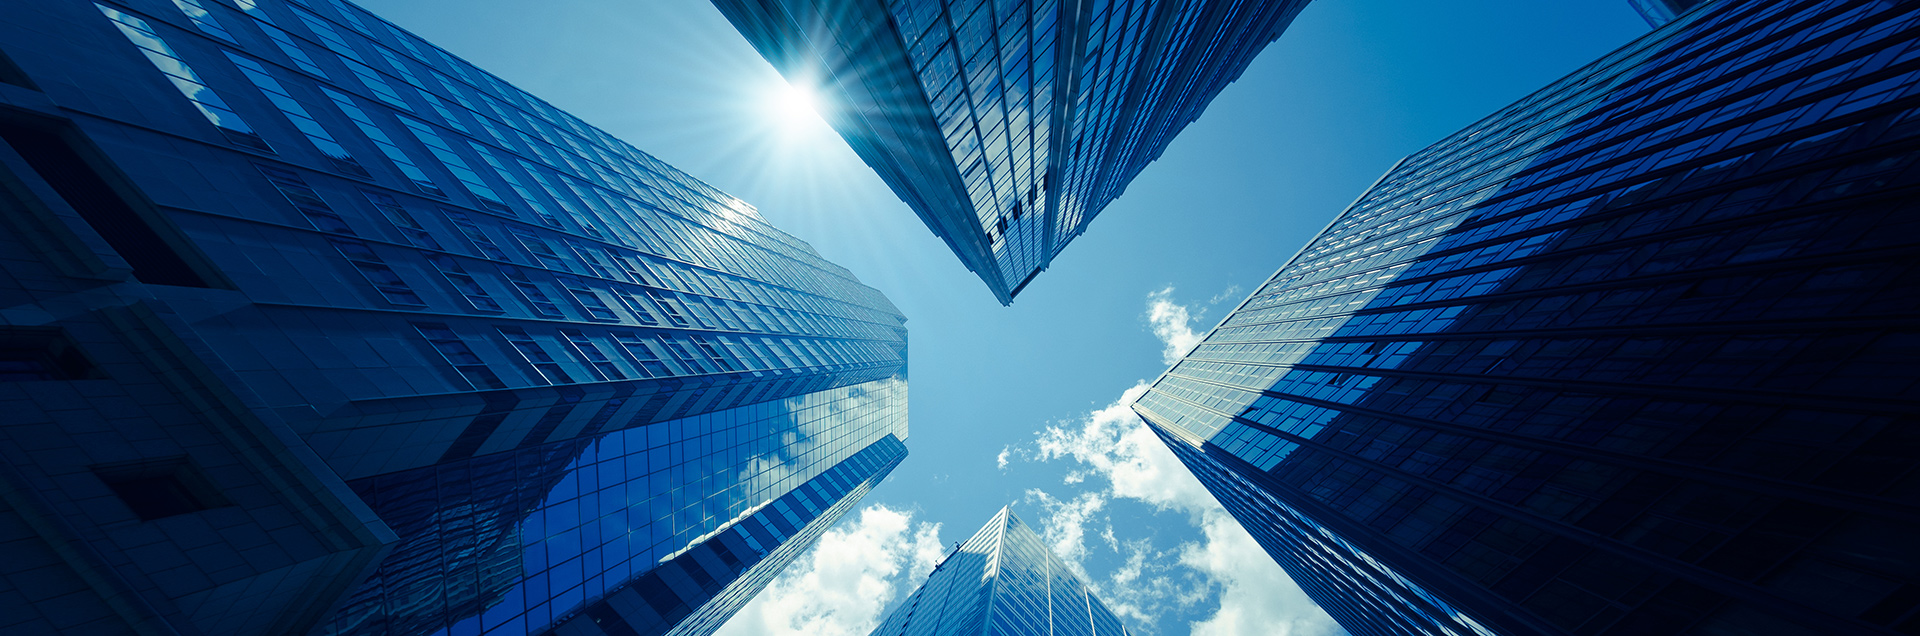 Tall buildings representing public companies